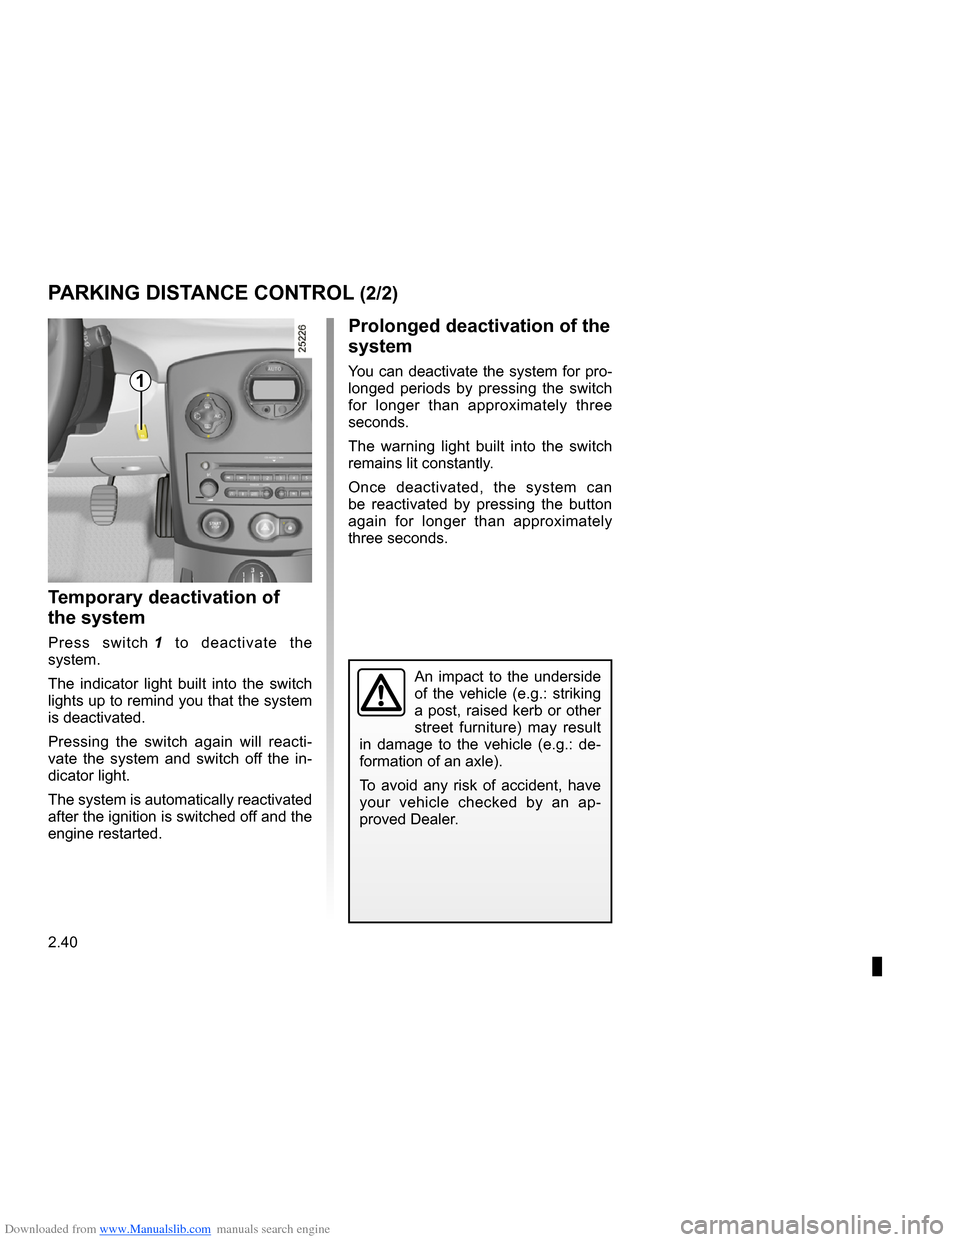 RENAULT CLIO 2009 X85 / 3.G Owners Manual, Page 132